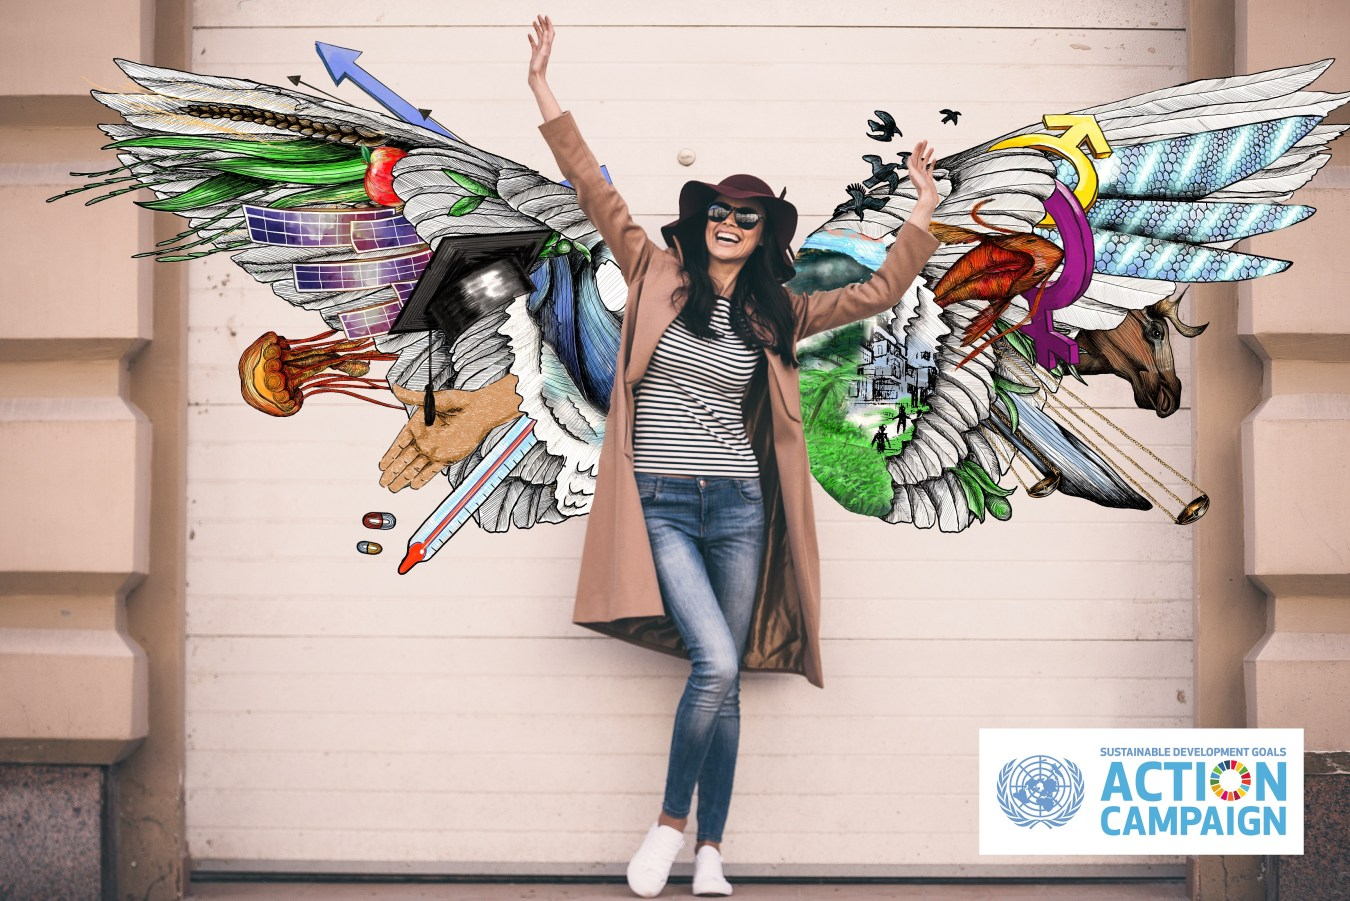 Spread your Goals and flap your wings for the #SDGs! A campaign launched in Germany invites citizens to have a say on the #SDGs